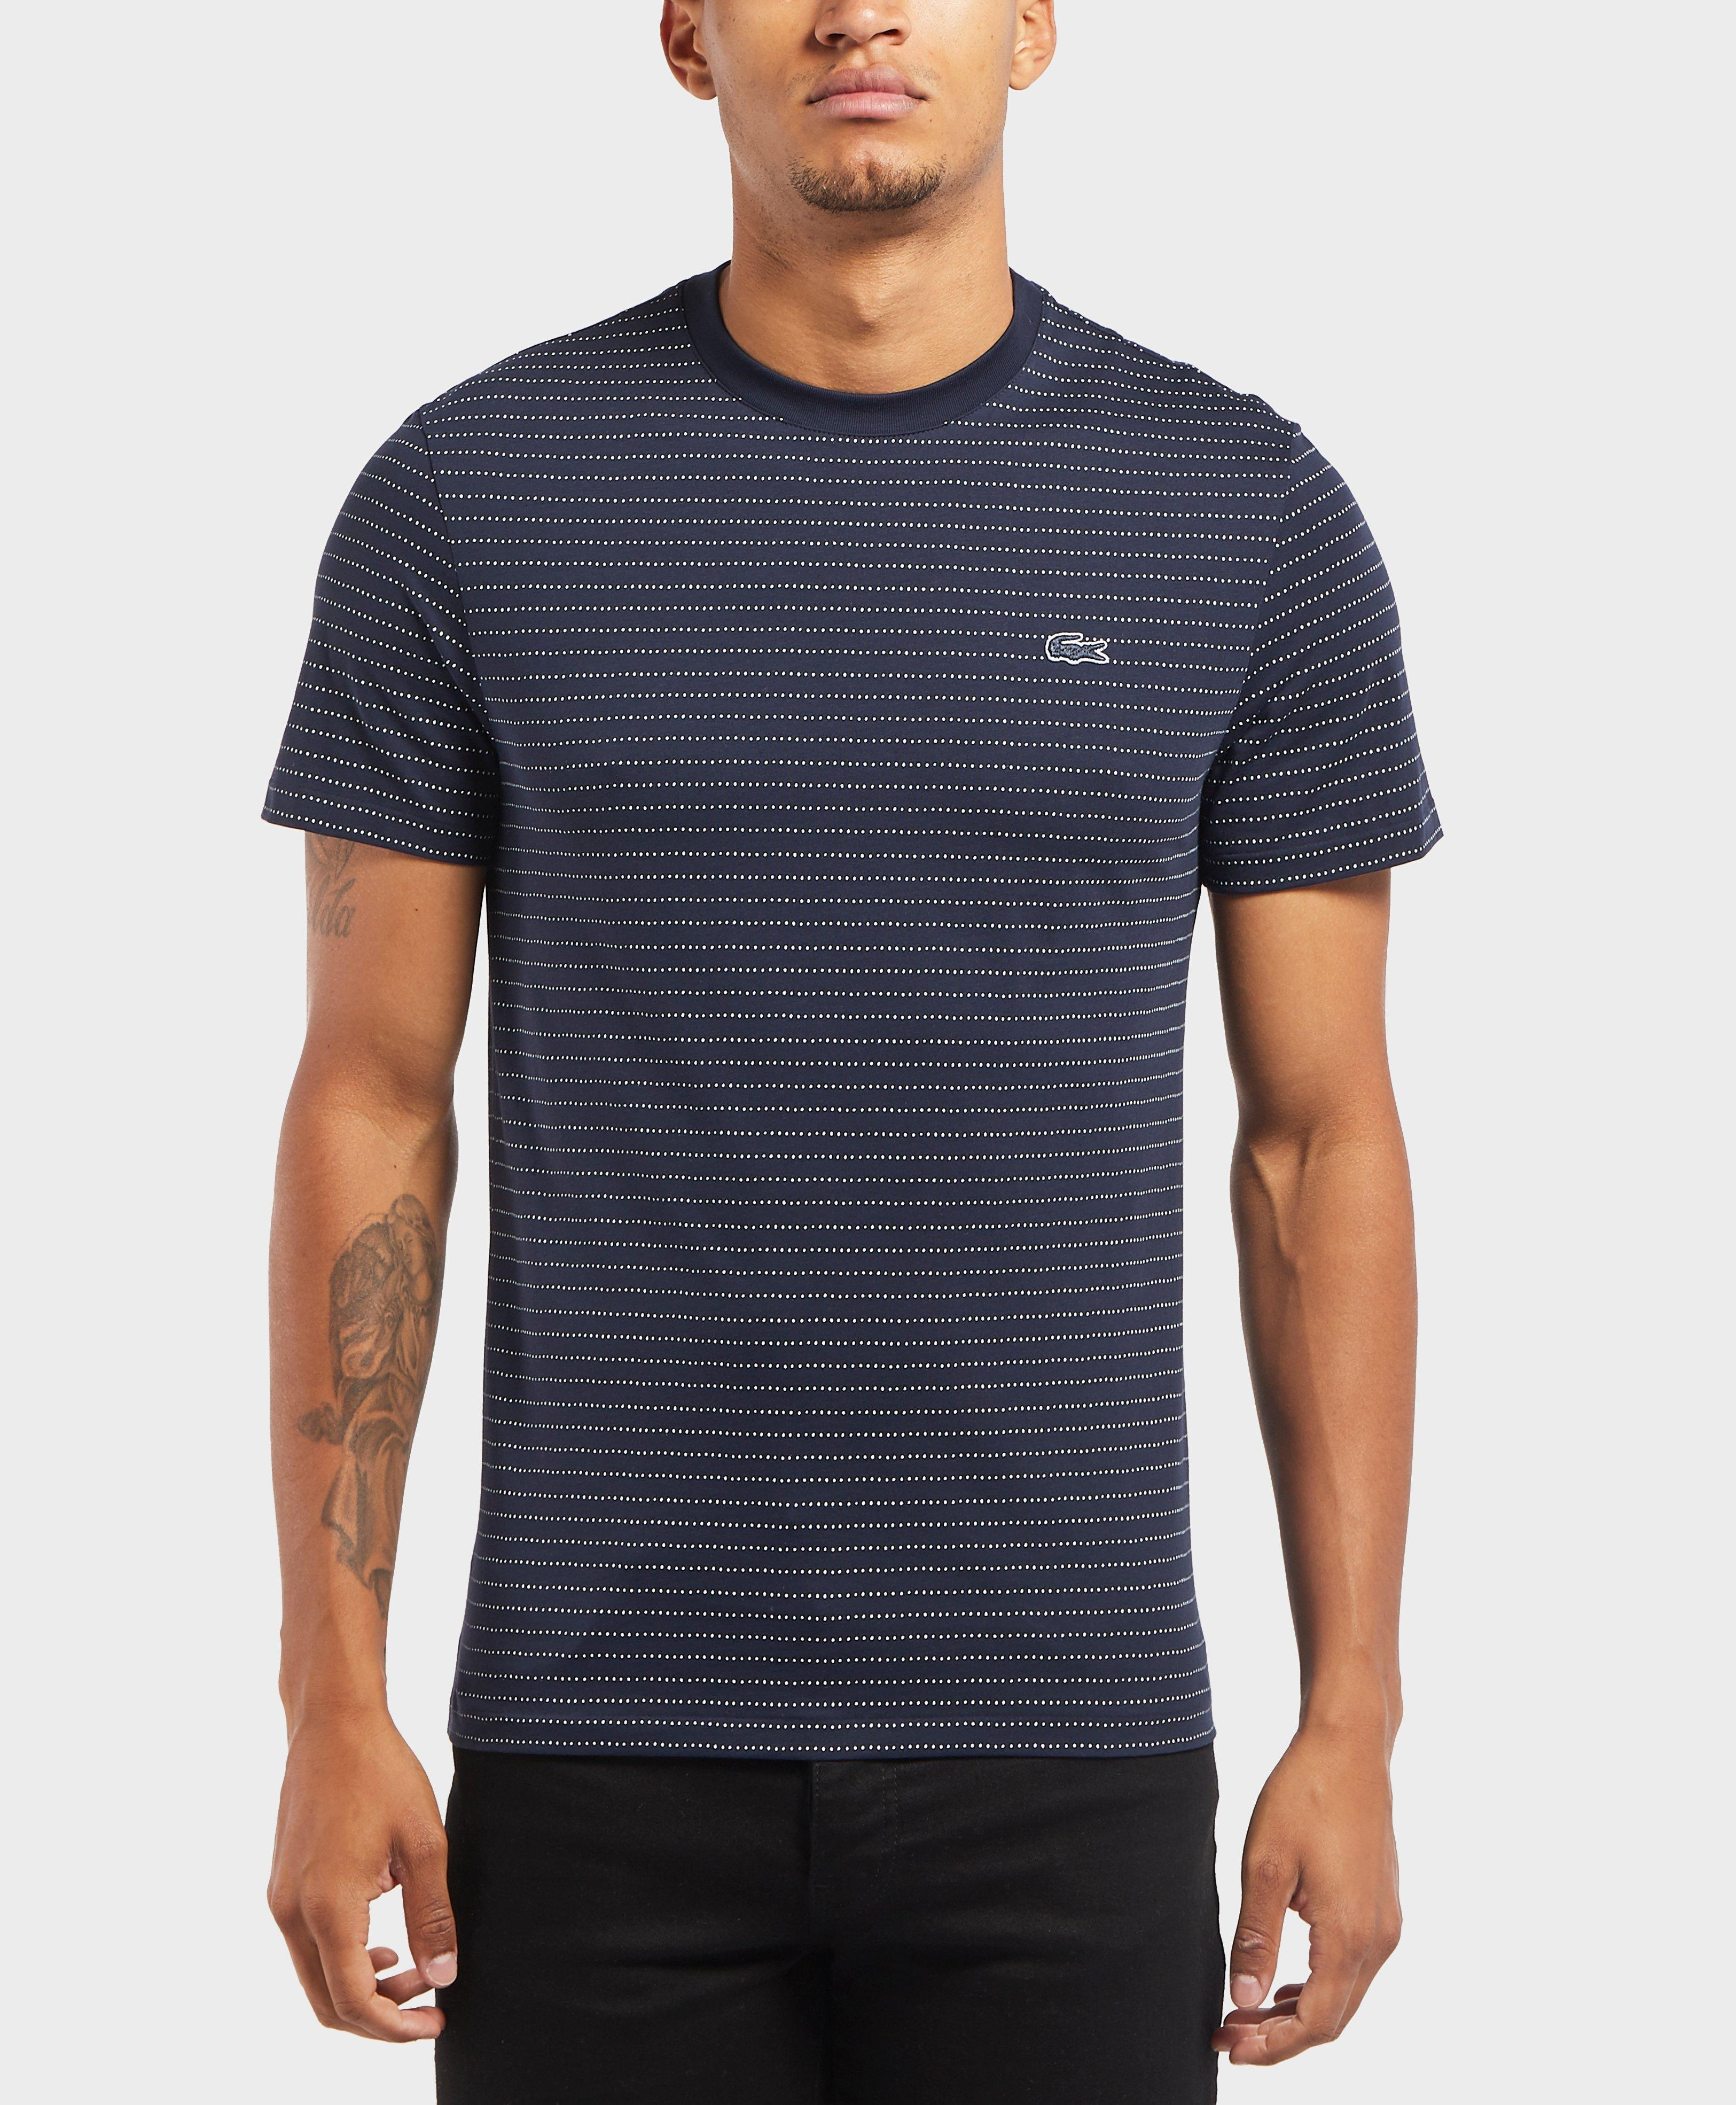 5a14afa4cc1ff Lacoste Dot Stripe Short Sleeve T-shirt in Blue for Men - Lyst